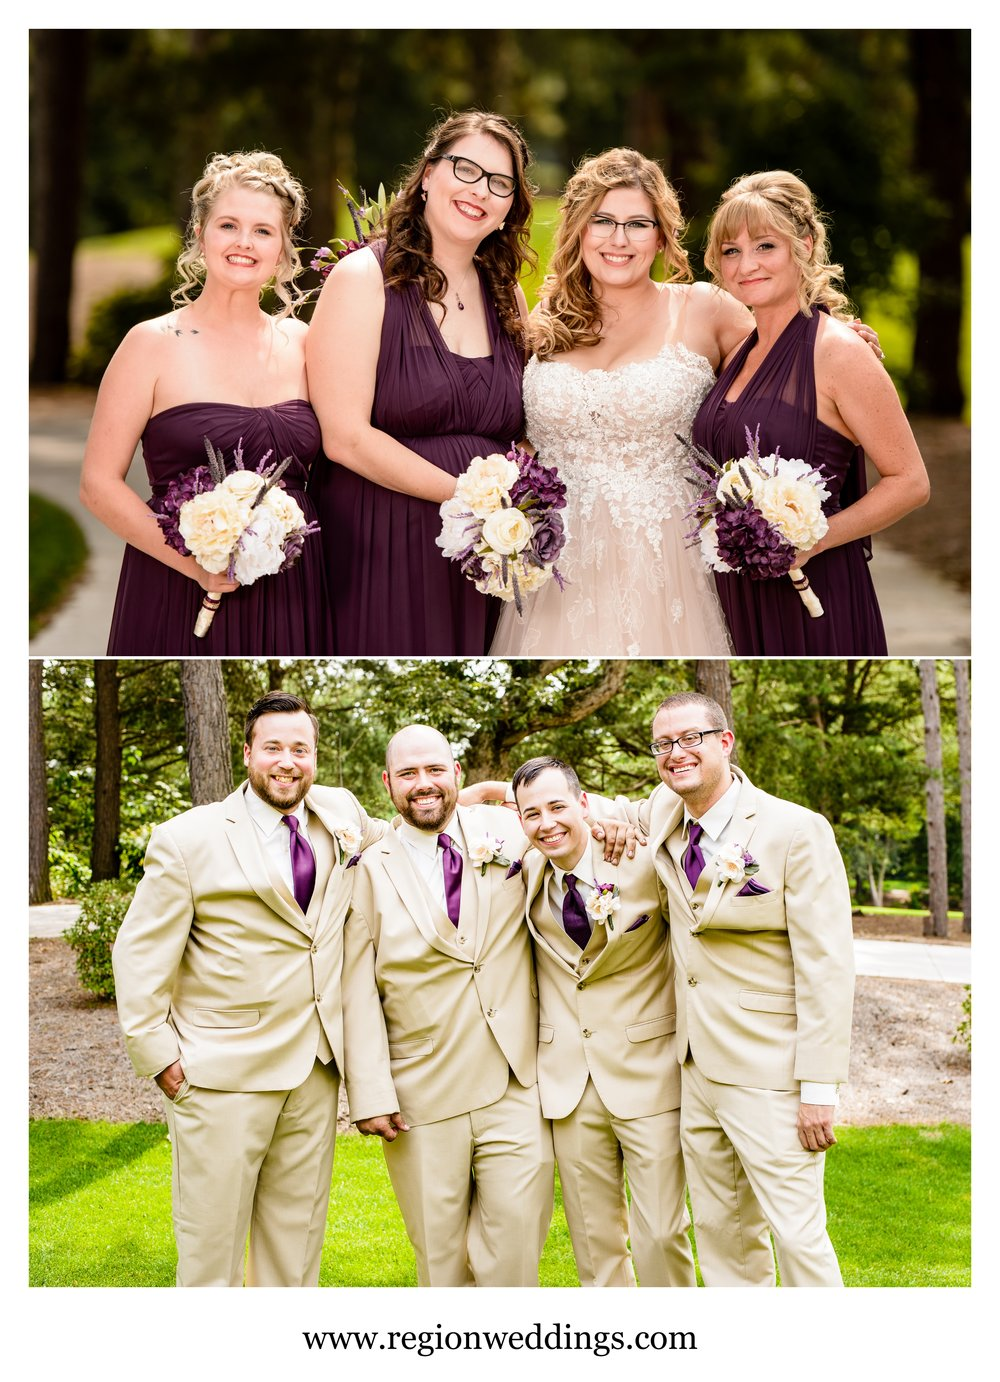 Bridesmaid and groomsmen photos at Sandy Pines Golf Course.